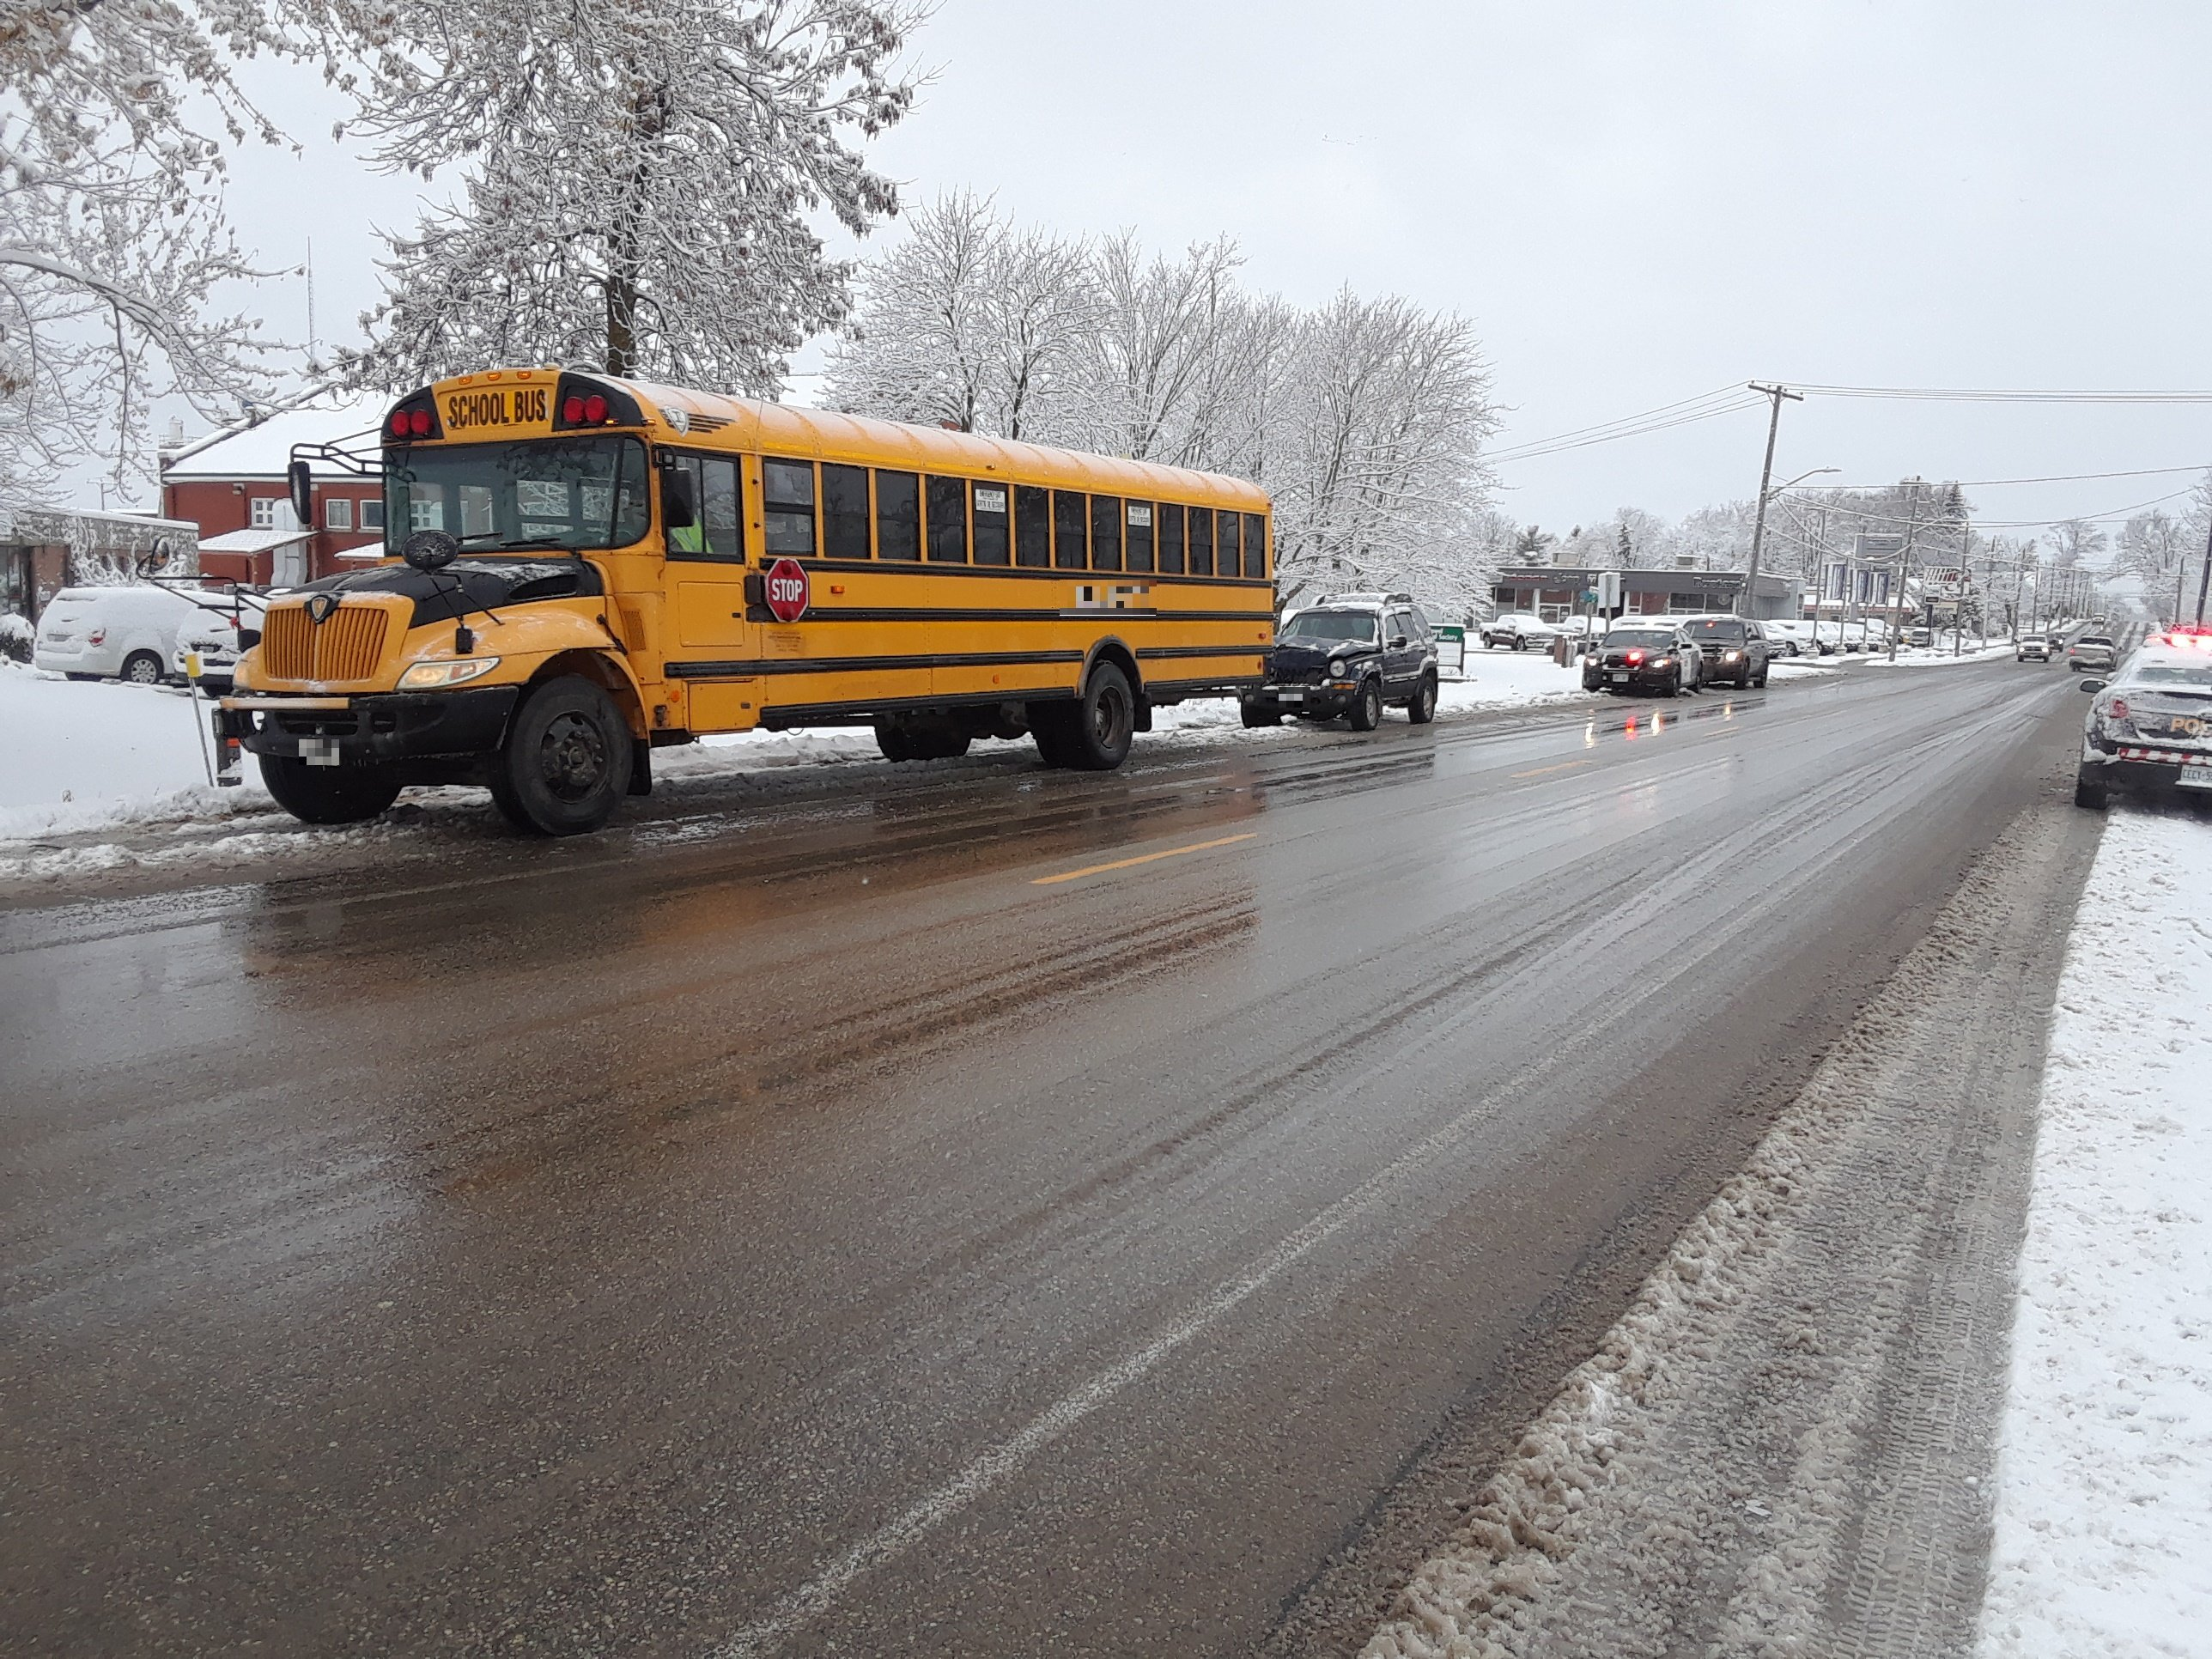 Police: No injuries after collision involving a school bus in Listowel - My Stratford Now